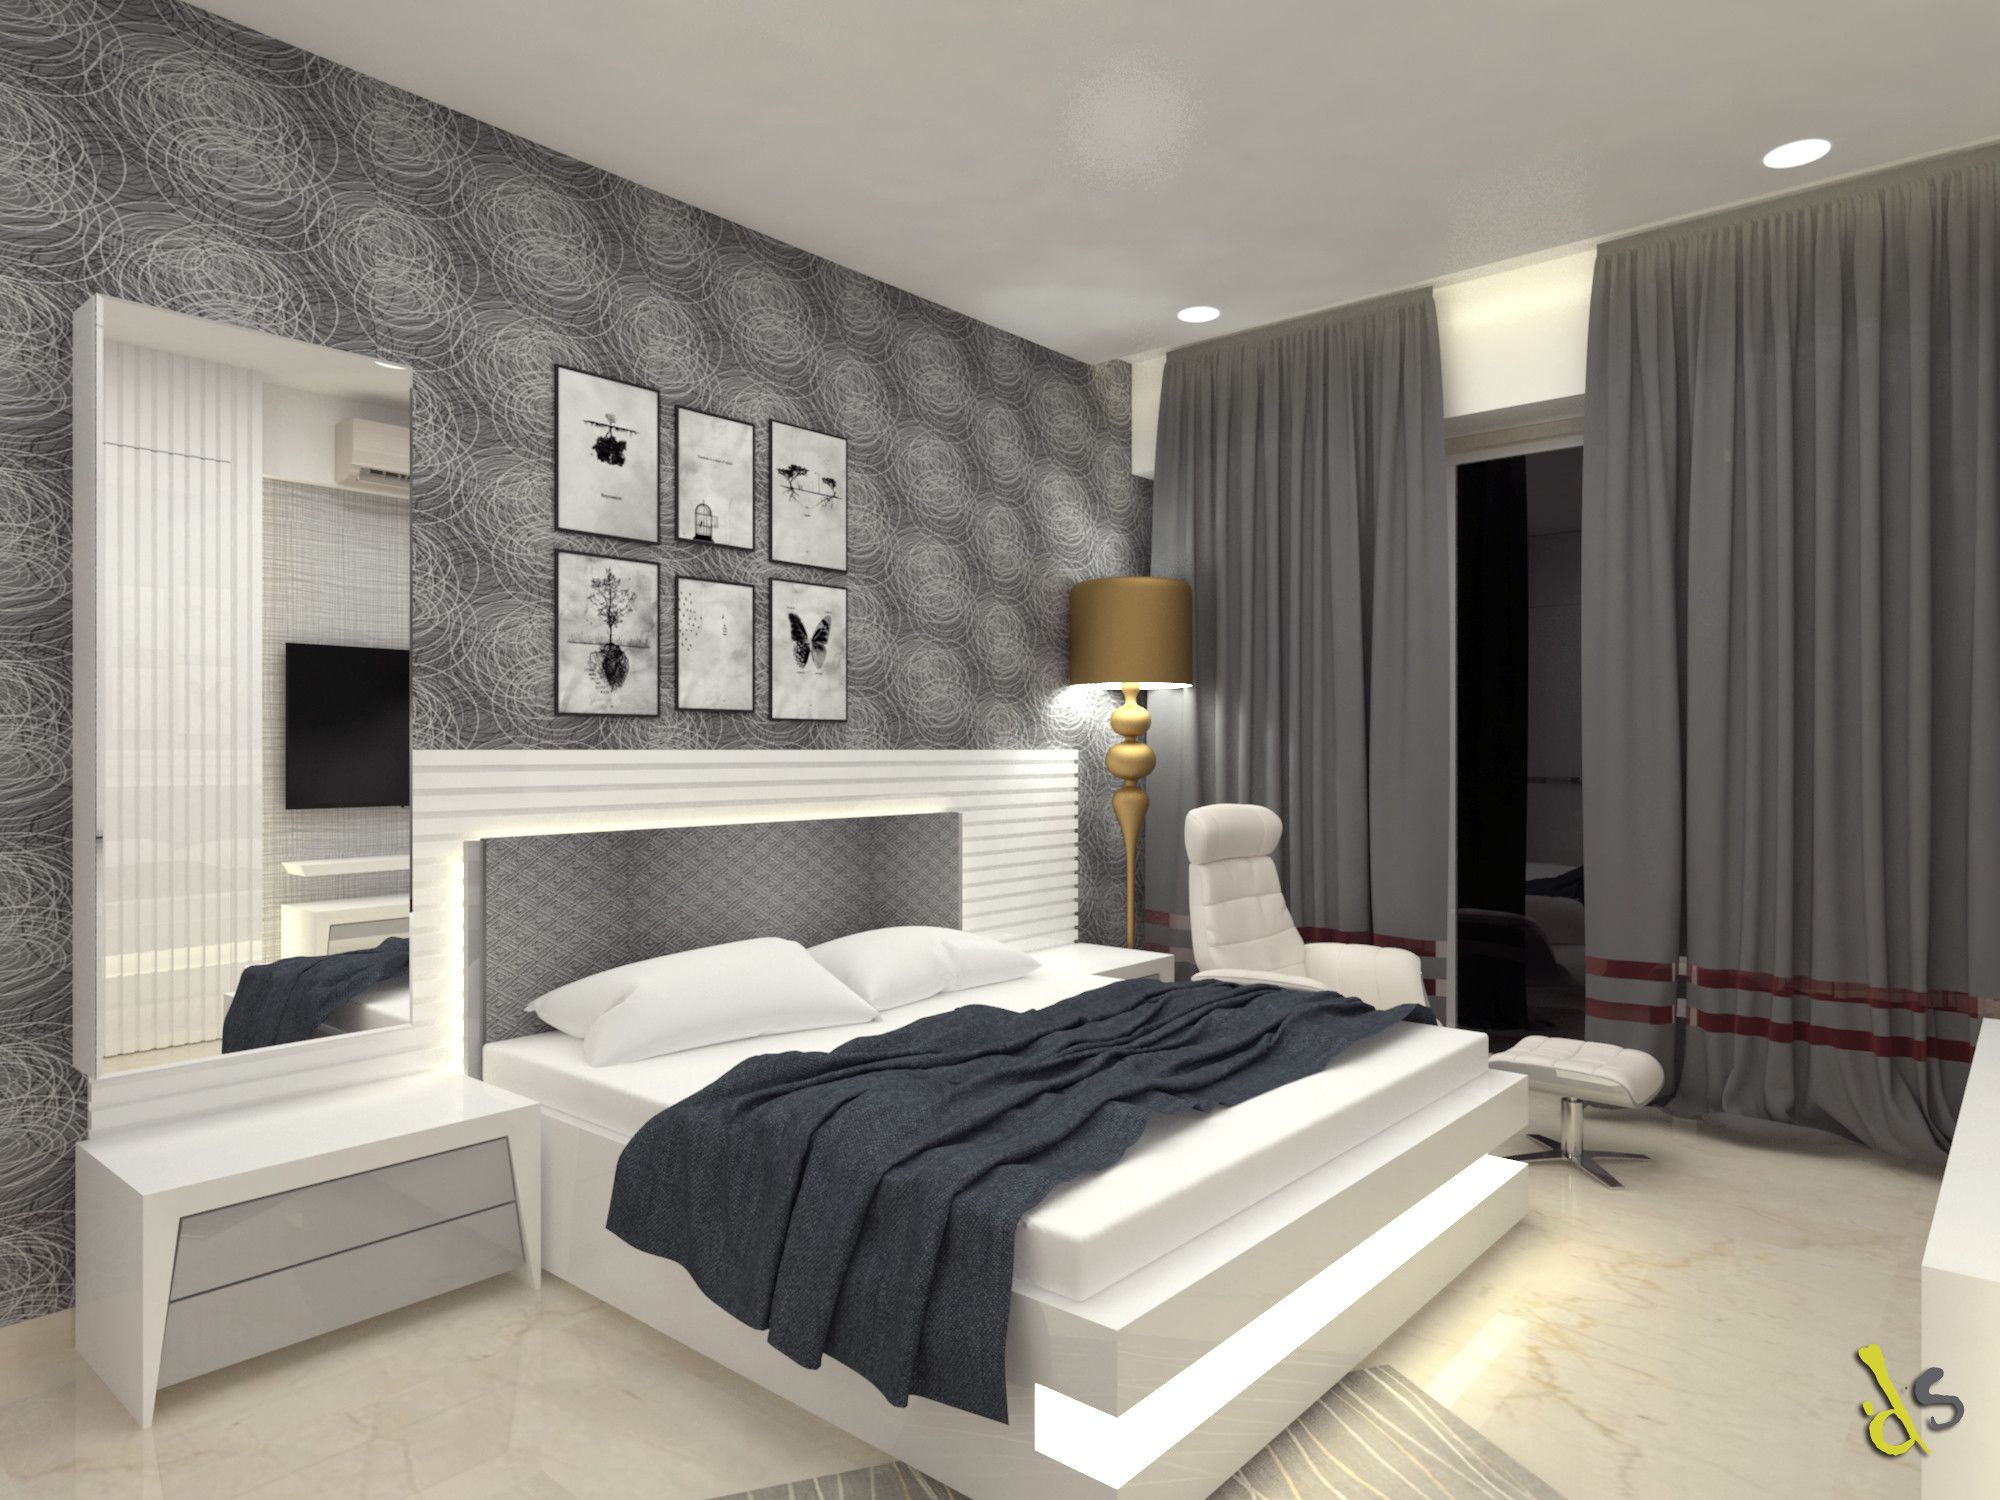 Bed room furnished with grey colored appearance . White